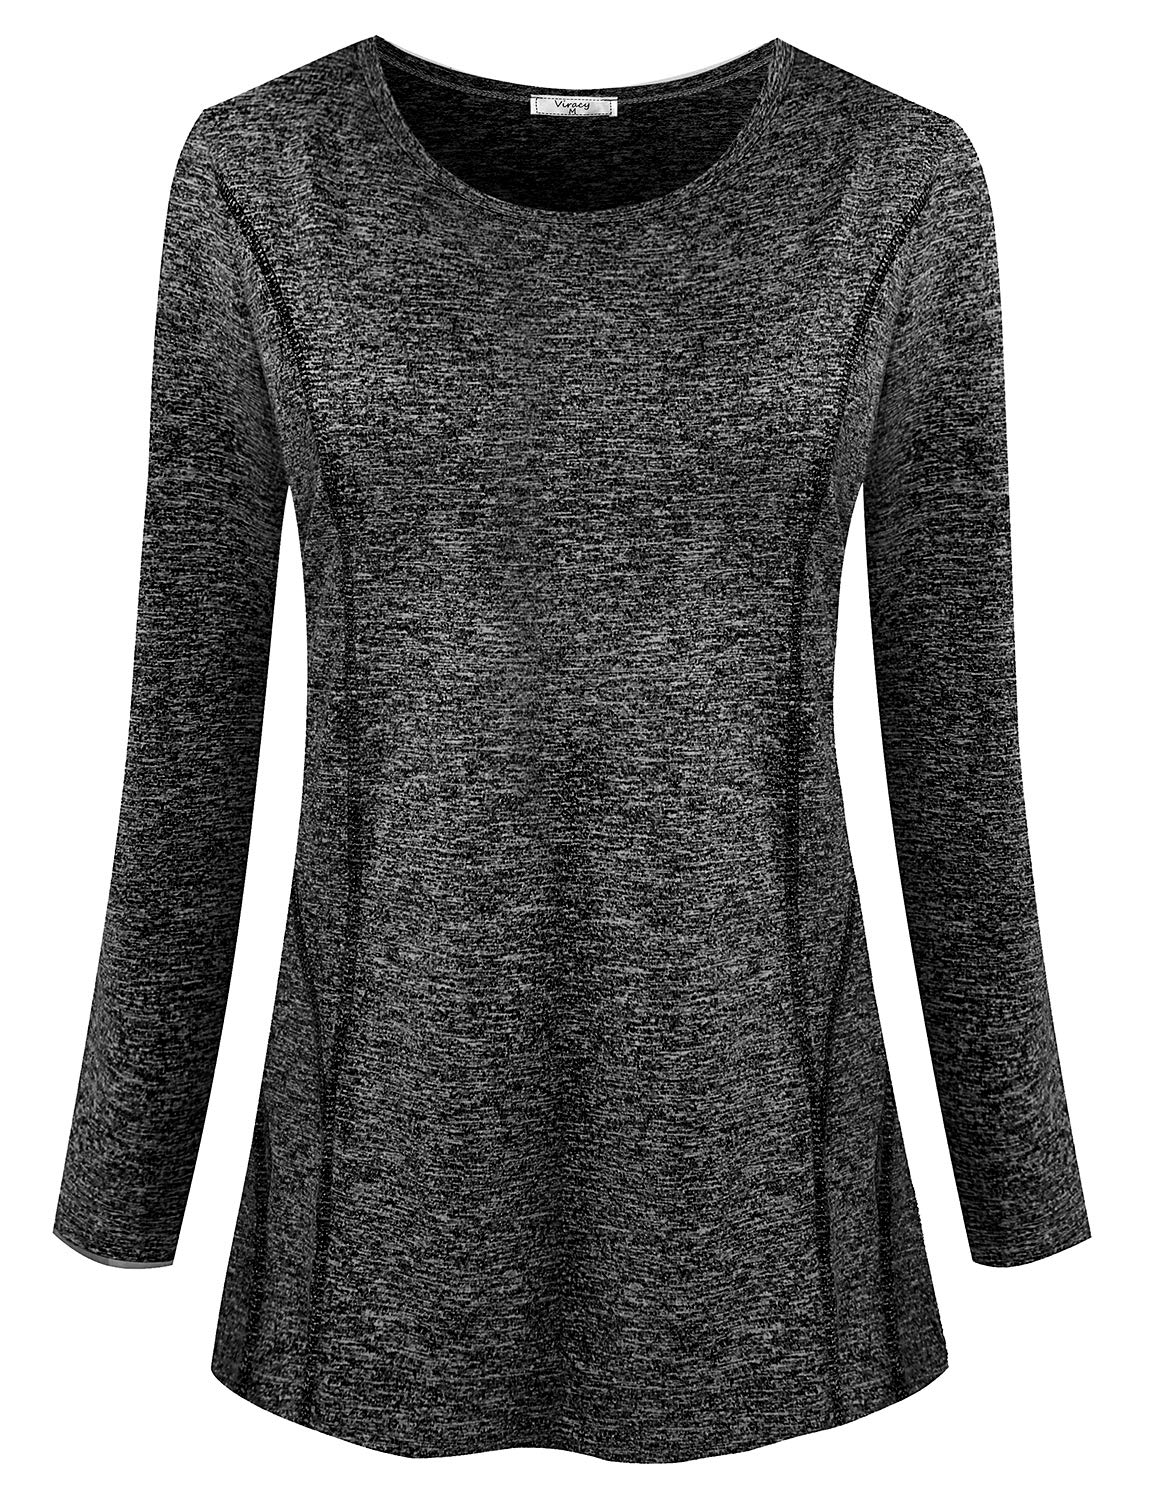 Viracy Workout Tops for Women, Ladies Athleisure Wear Long Sleeve O Neck Fitness Pilates Tunic Exercise Yoga Running Active Shirts Elastic Moving Freely Fishing Hiking Blouse Black M